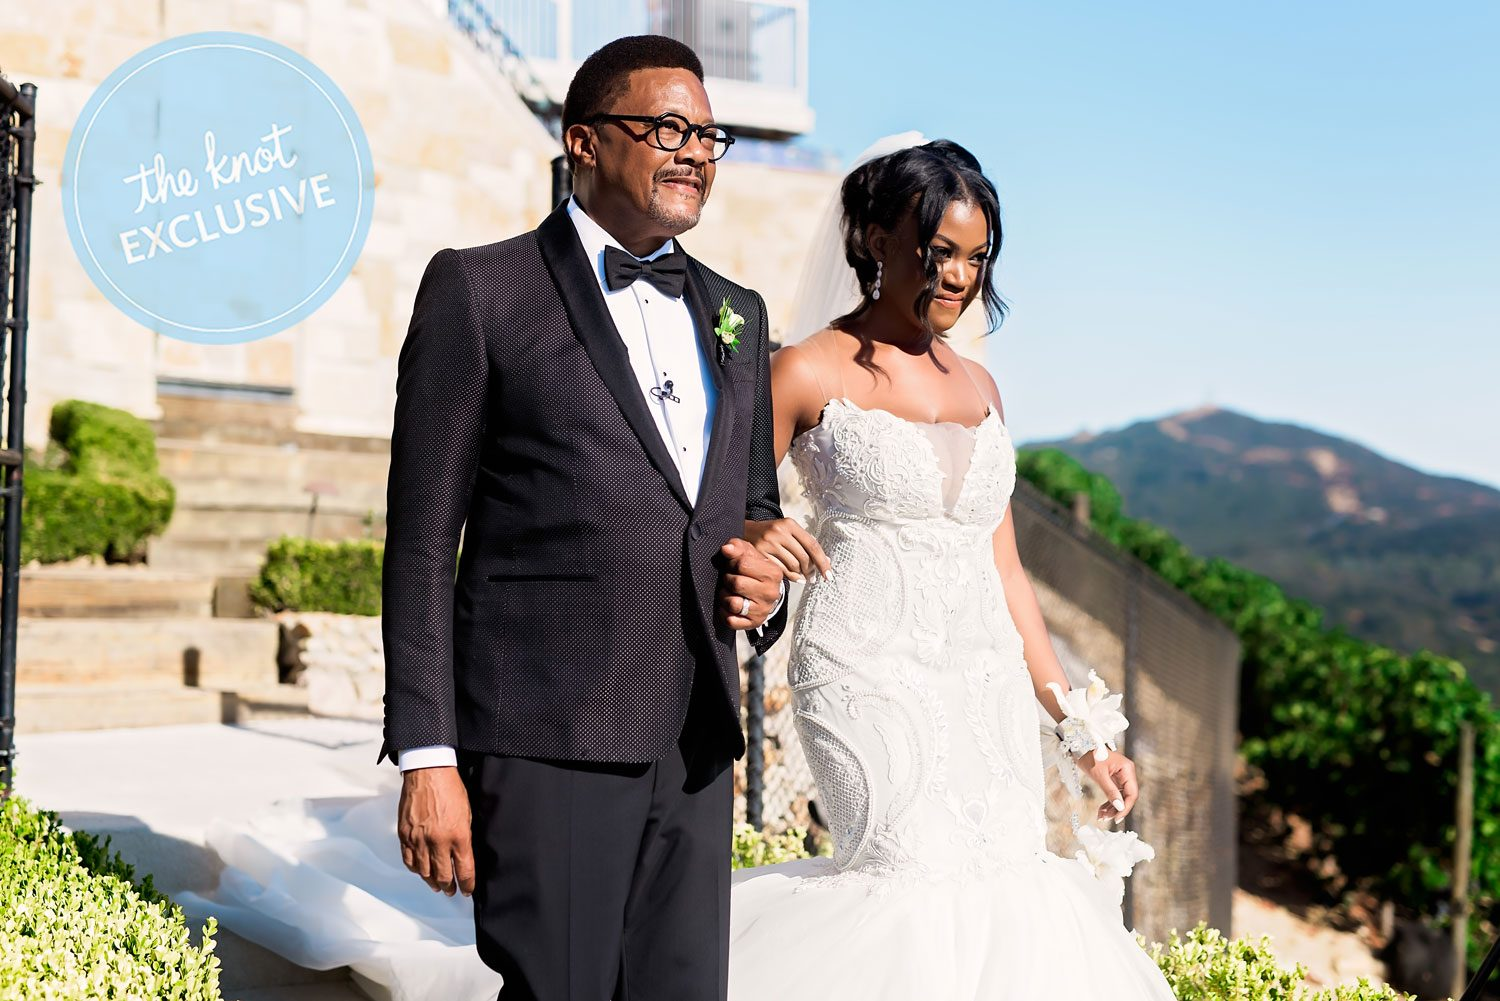 Johnny Mathis Wedding.Judge Mathis On His Daughter Camara S Wedding Exclusive Photos